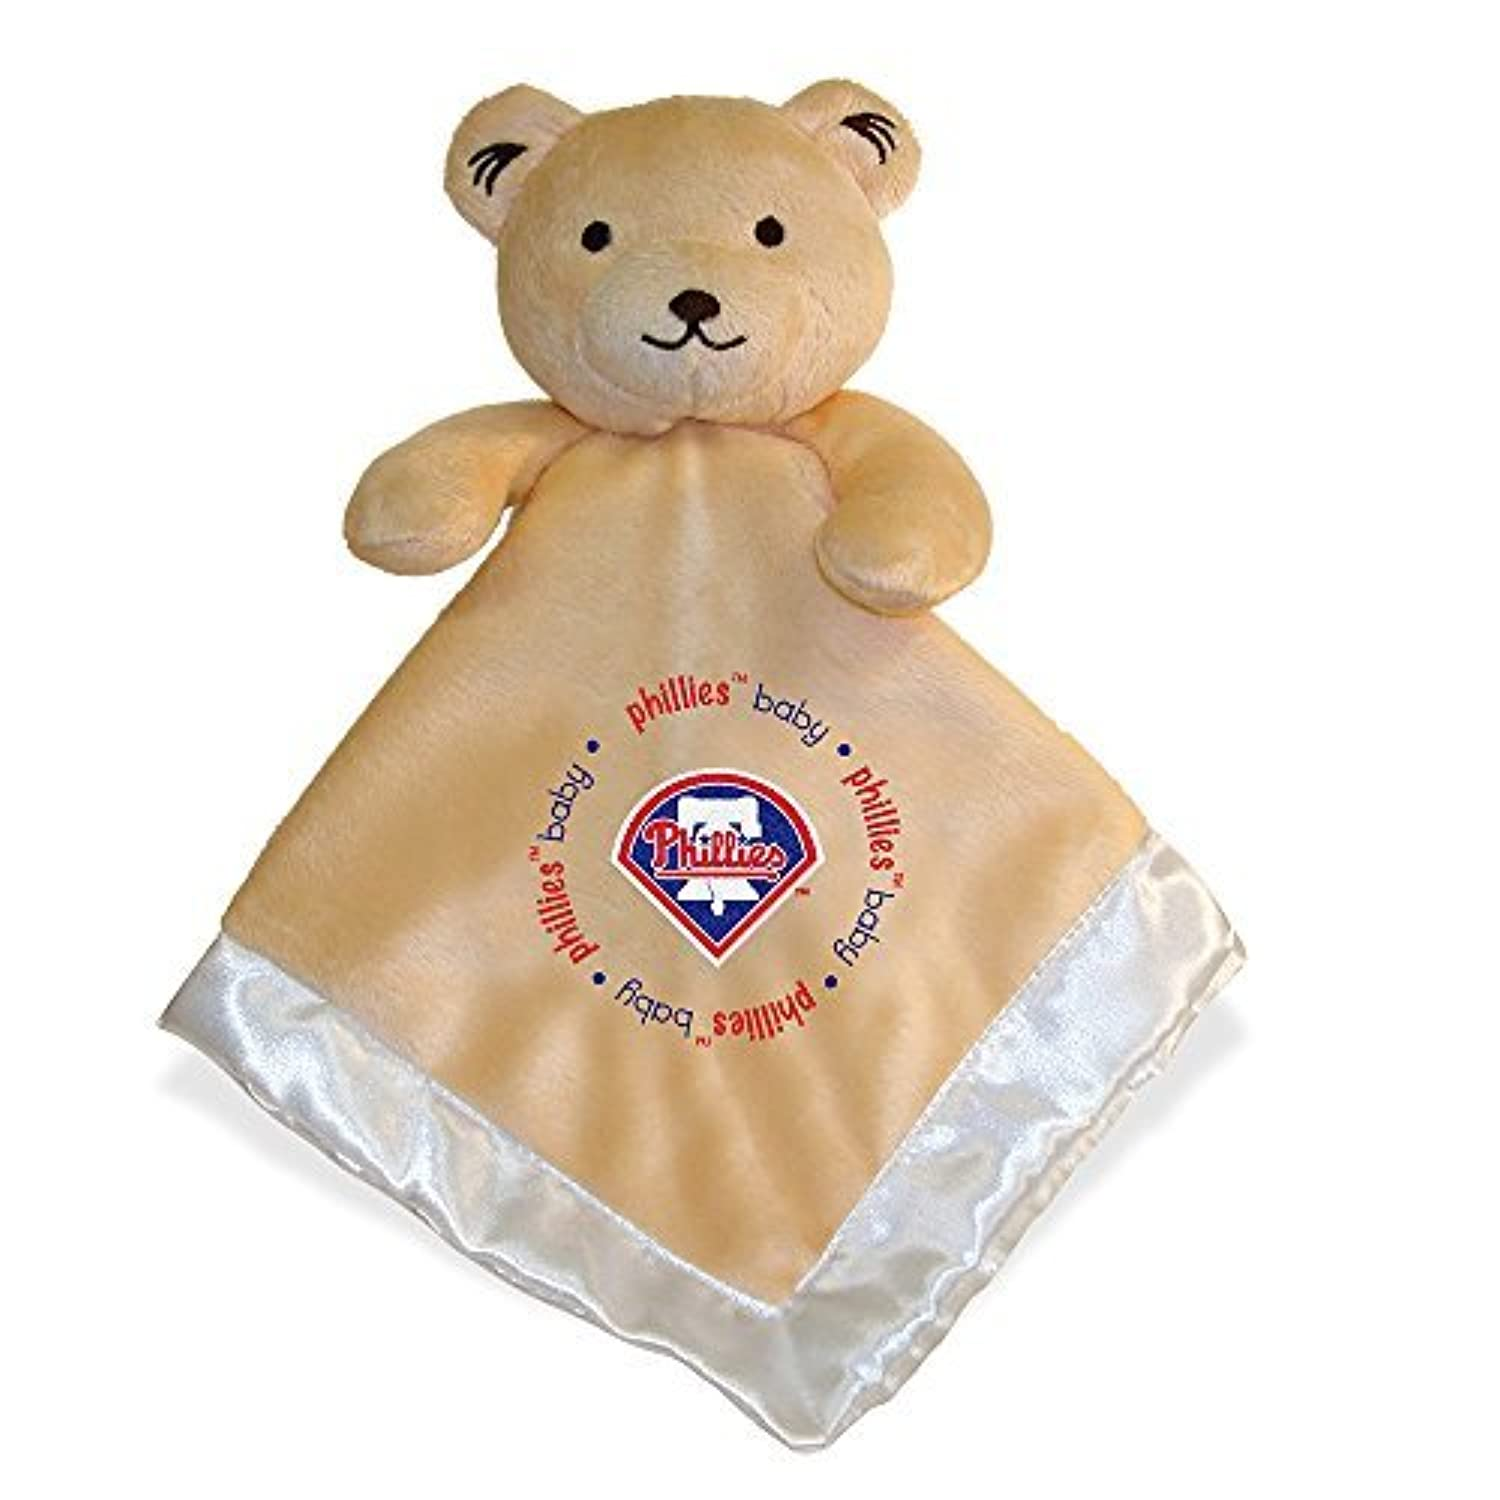 Baby Fanatic Philadelphia Phillies Security Bear Blanket, 14 x 14-Inch by Baby Fanatic [並行輸入品]